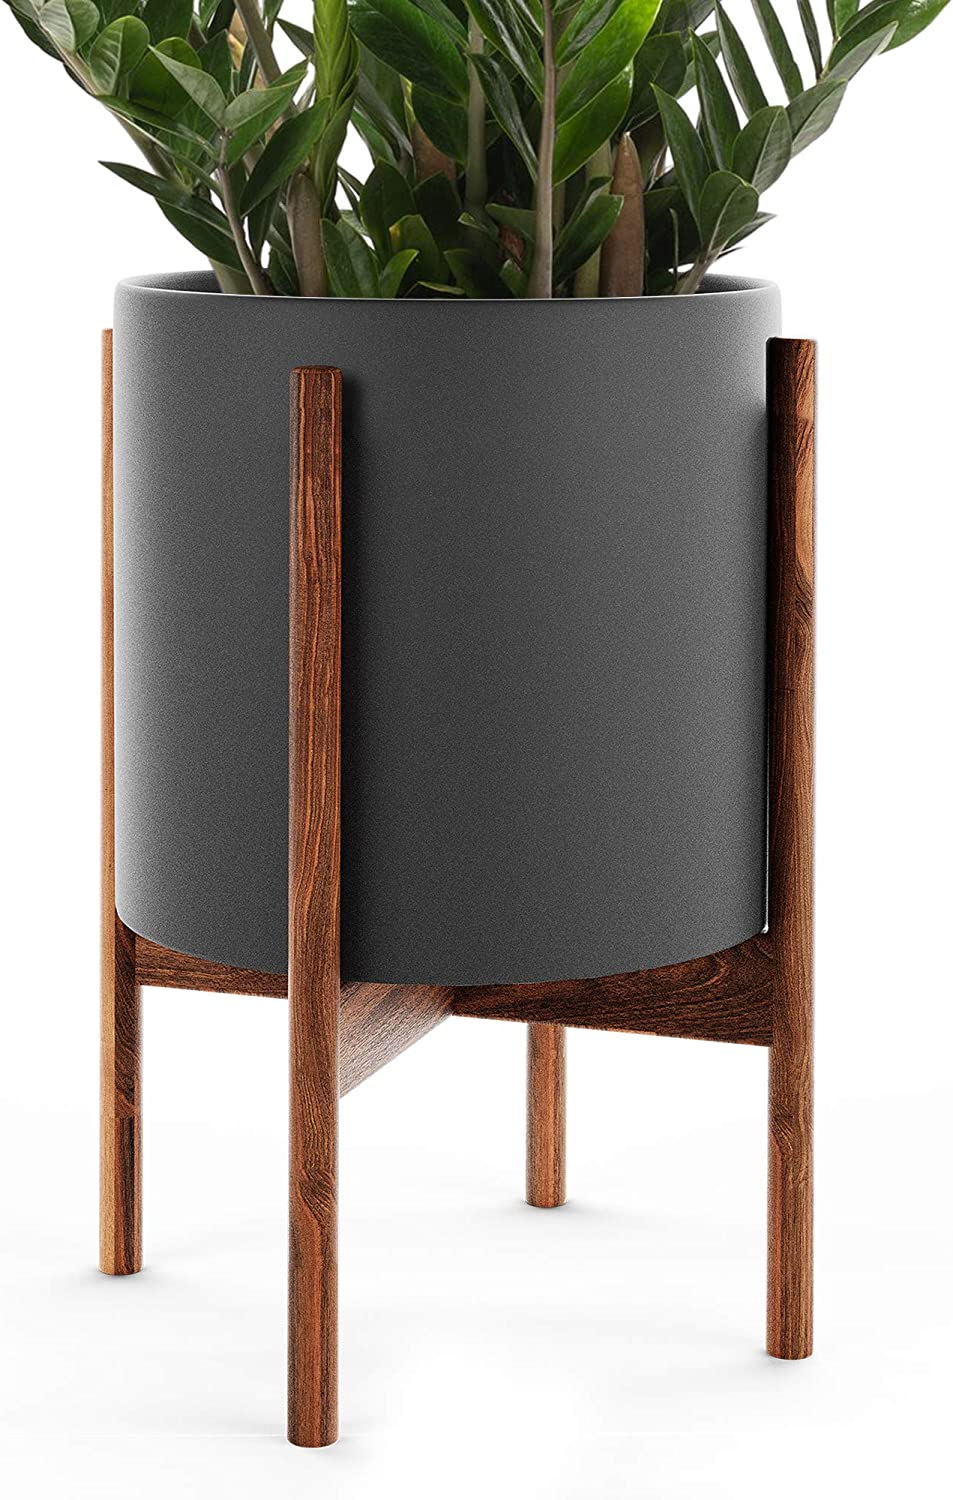 Omysa Mid Century Plant Stand With Pot Included 10 Black Ceramic Planter With Stand Large Indoor Planter Pot For Plants Trees Flowers 6 Colors White Black Peach